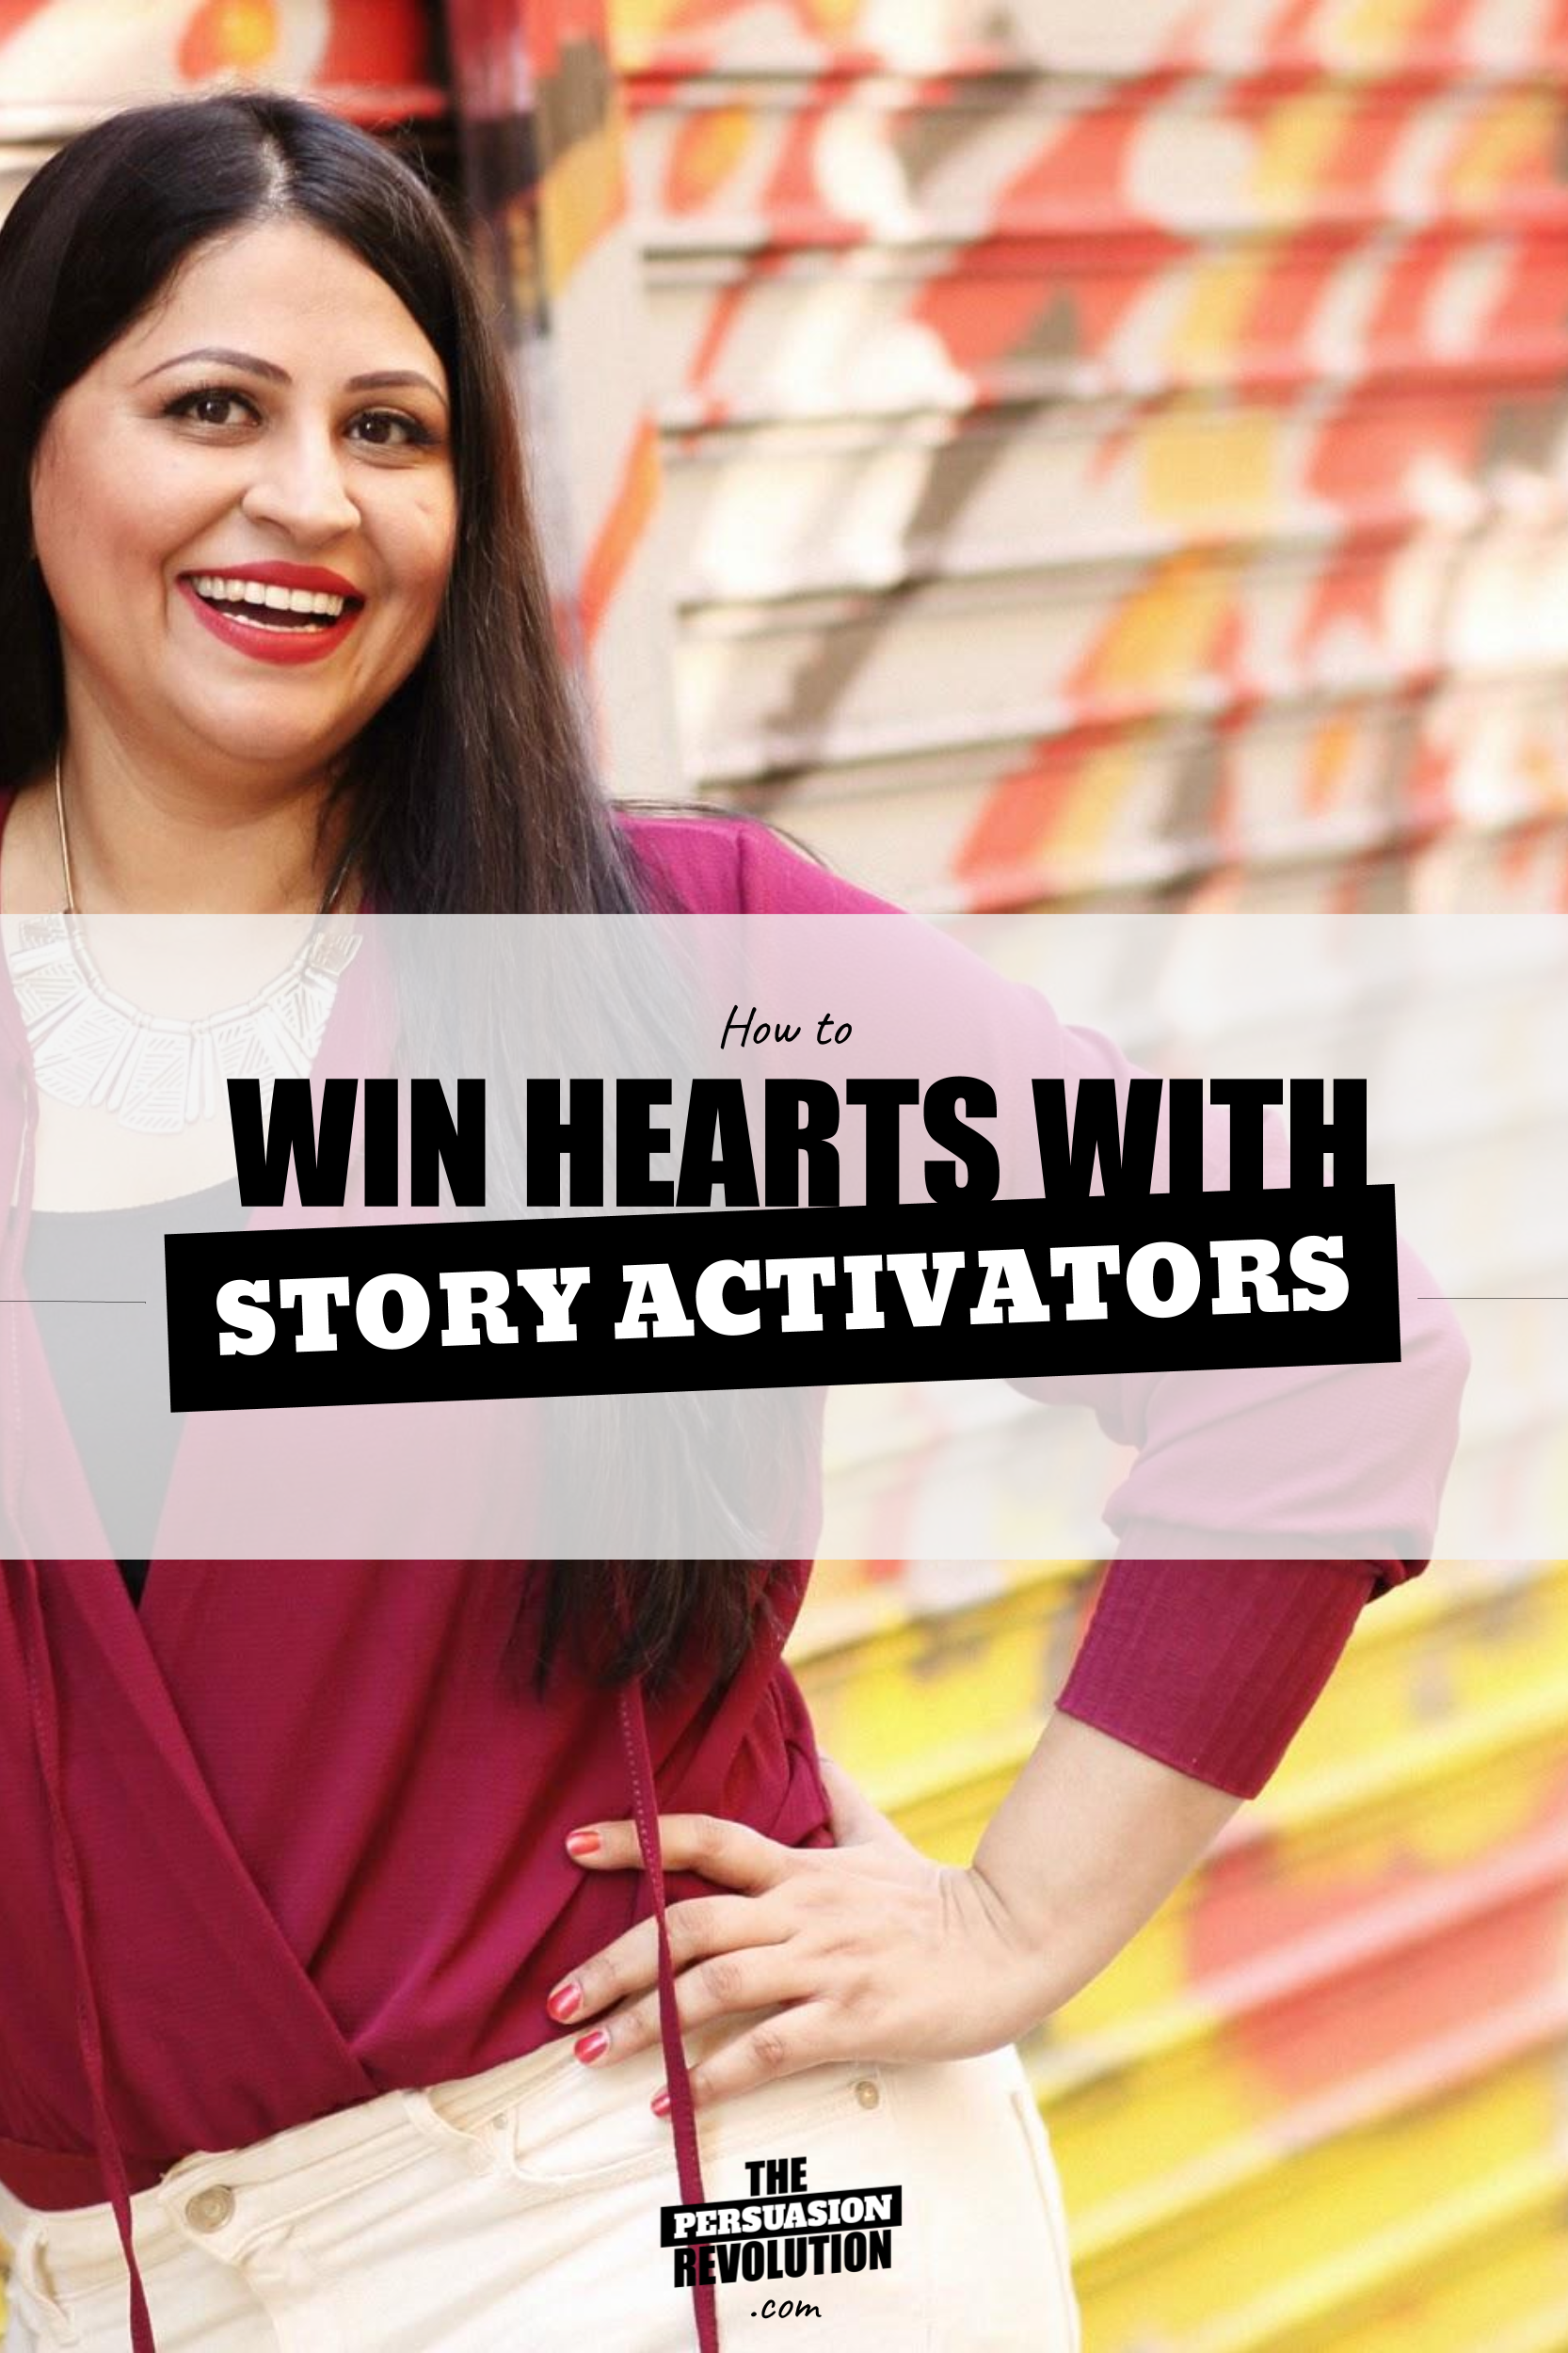 10 story activators that steal hearts, create empathy, and make them fall hopelessly inn love with you